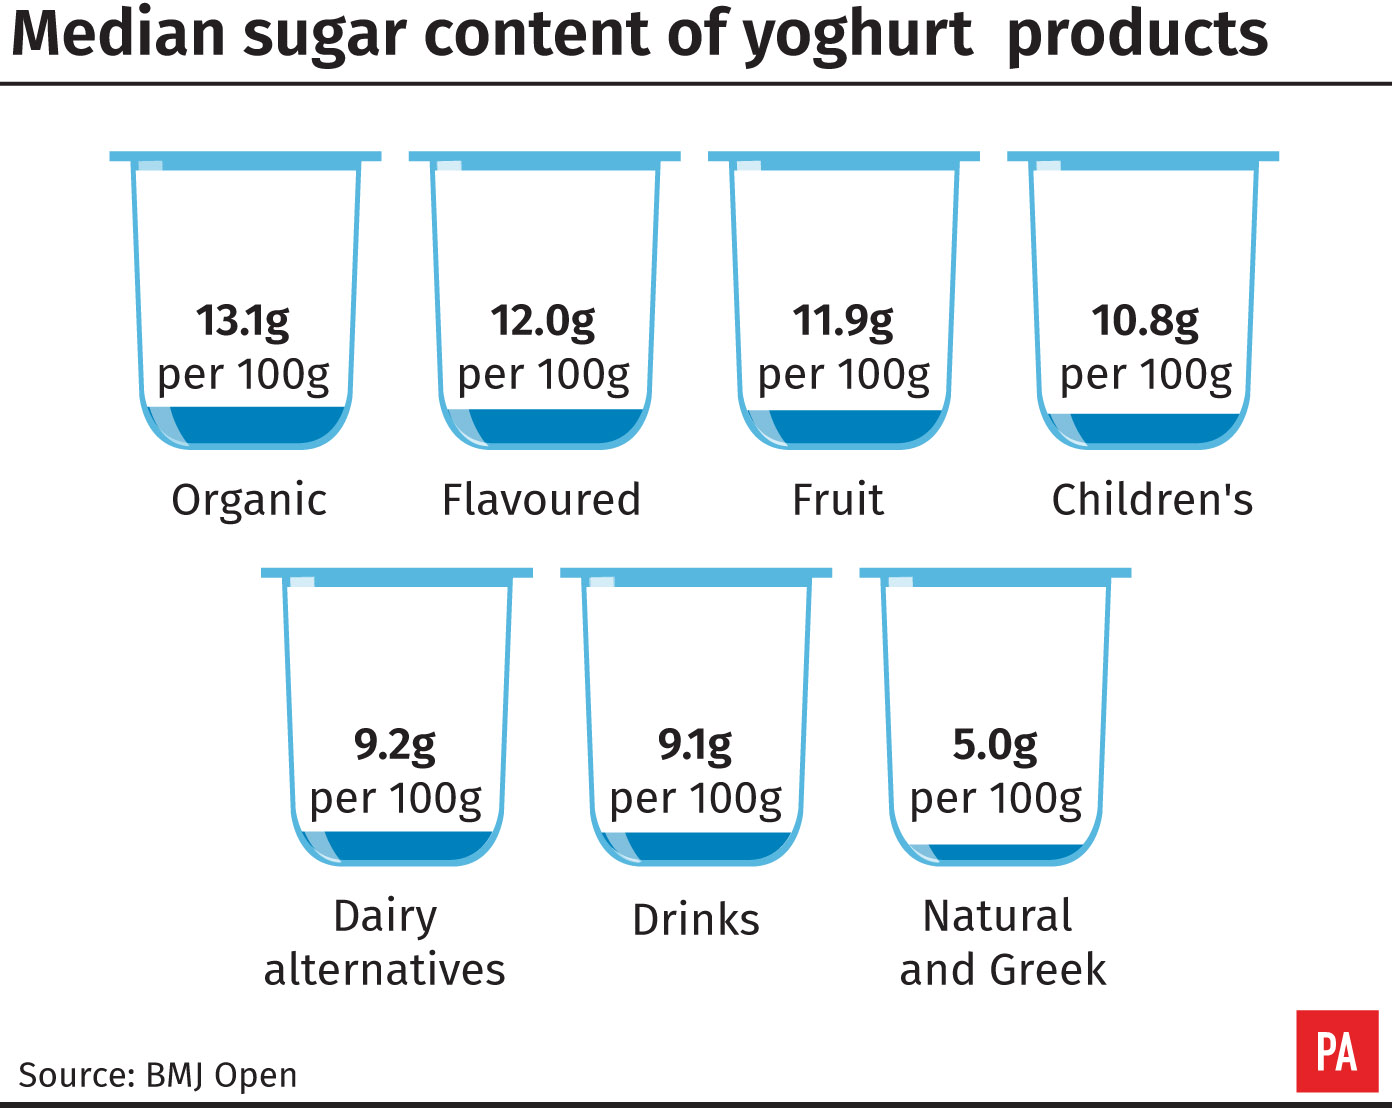 Median sugar levels in yoghurts